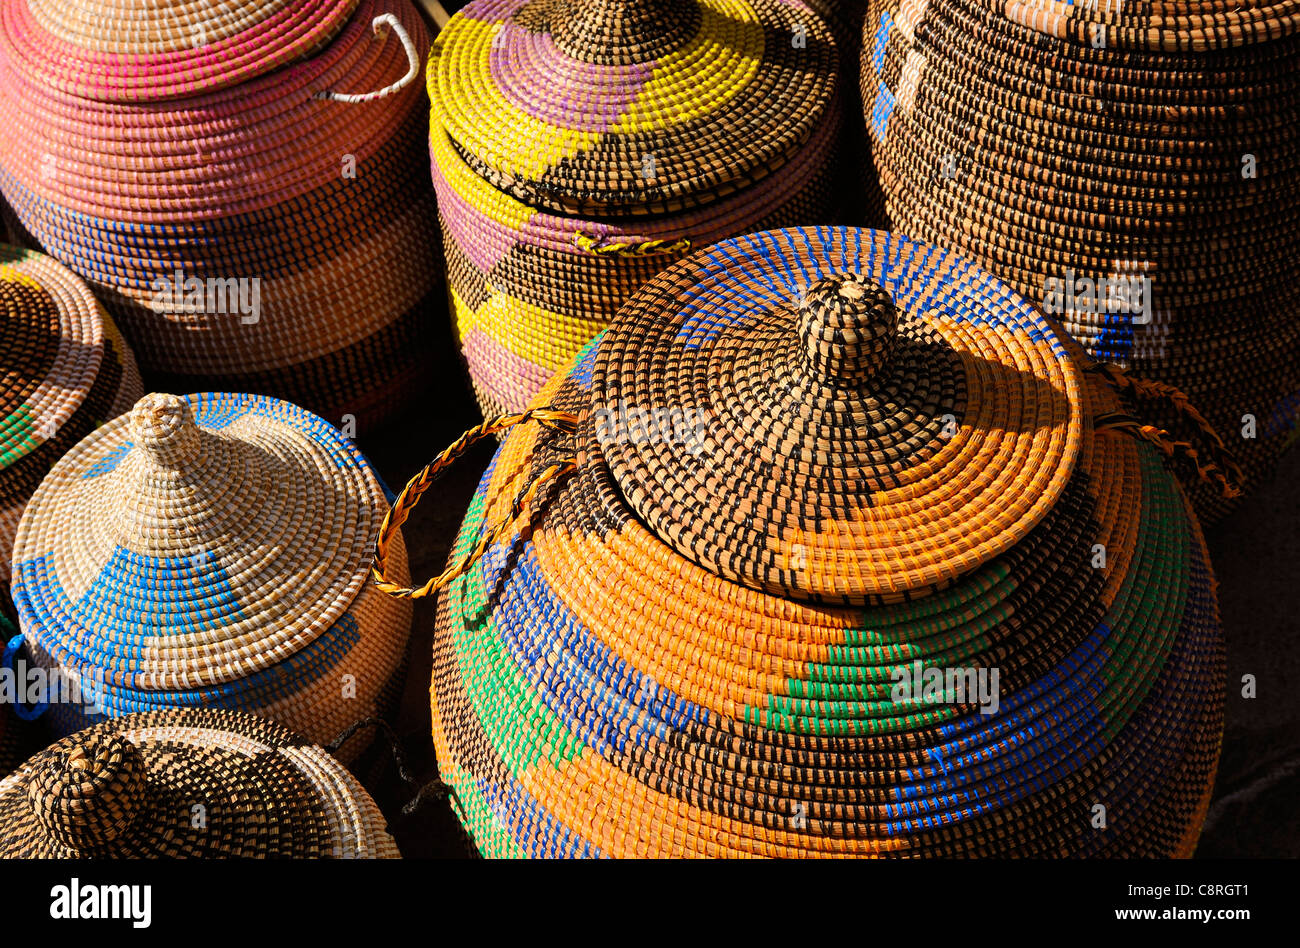 COLOURFUL COLORFUL WOVEN BASKETS IN A STREET MARKET SPAIN ESPANA - Stock Image